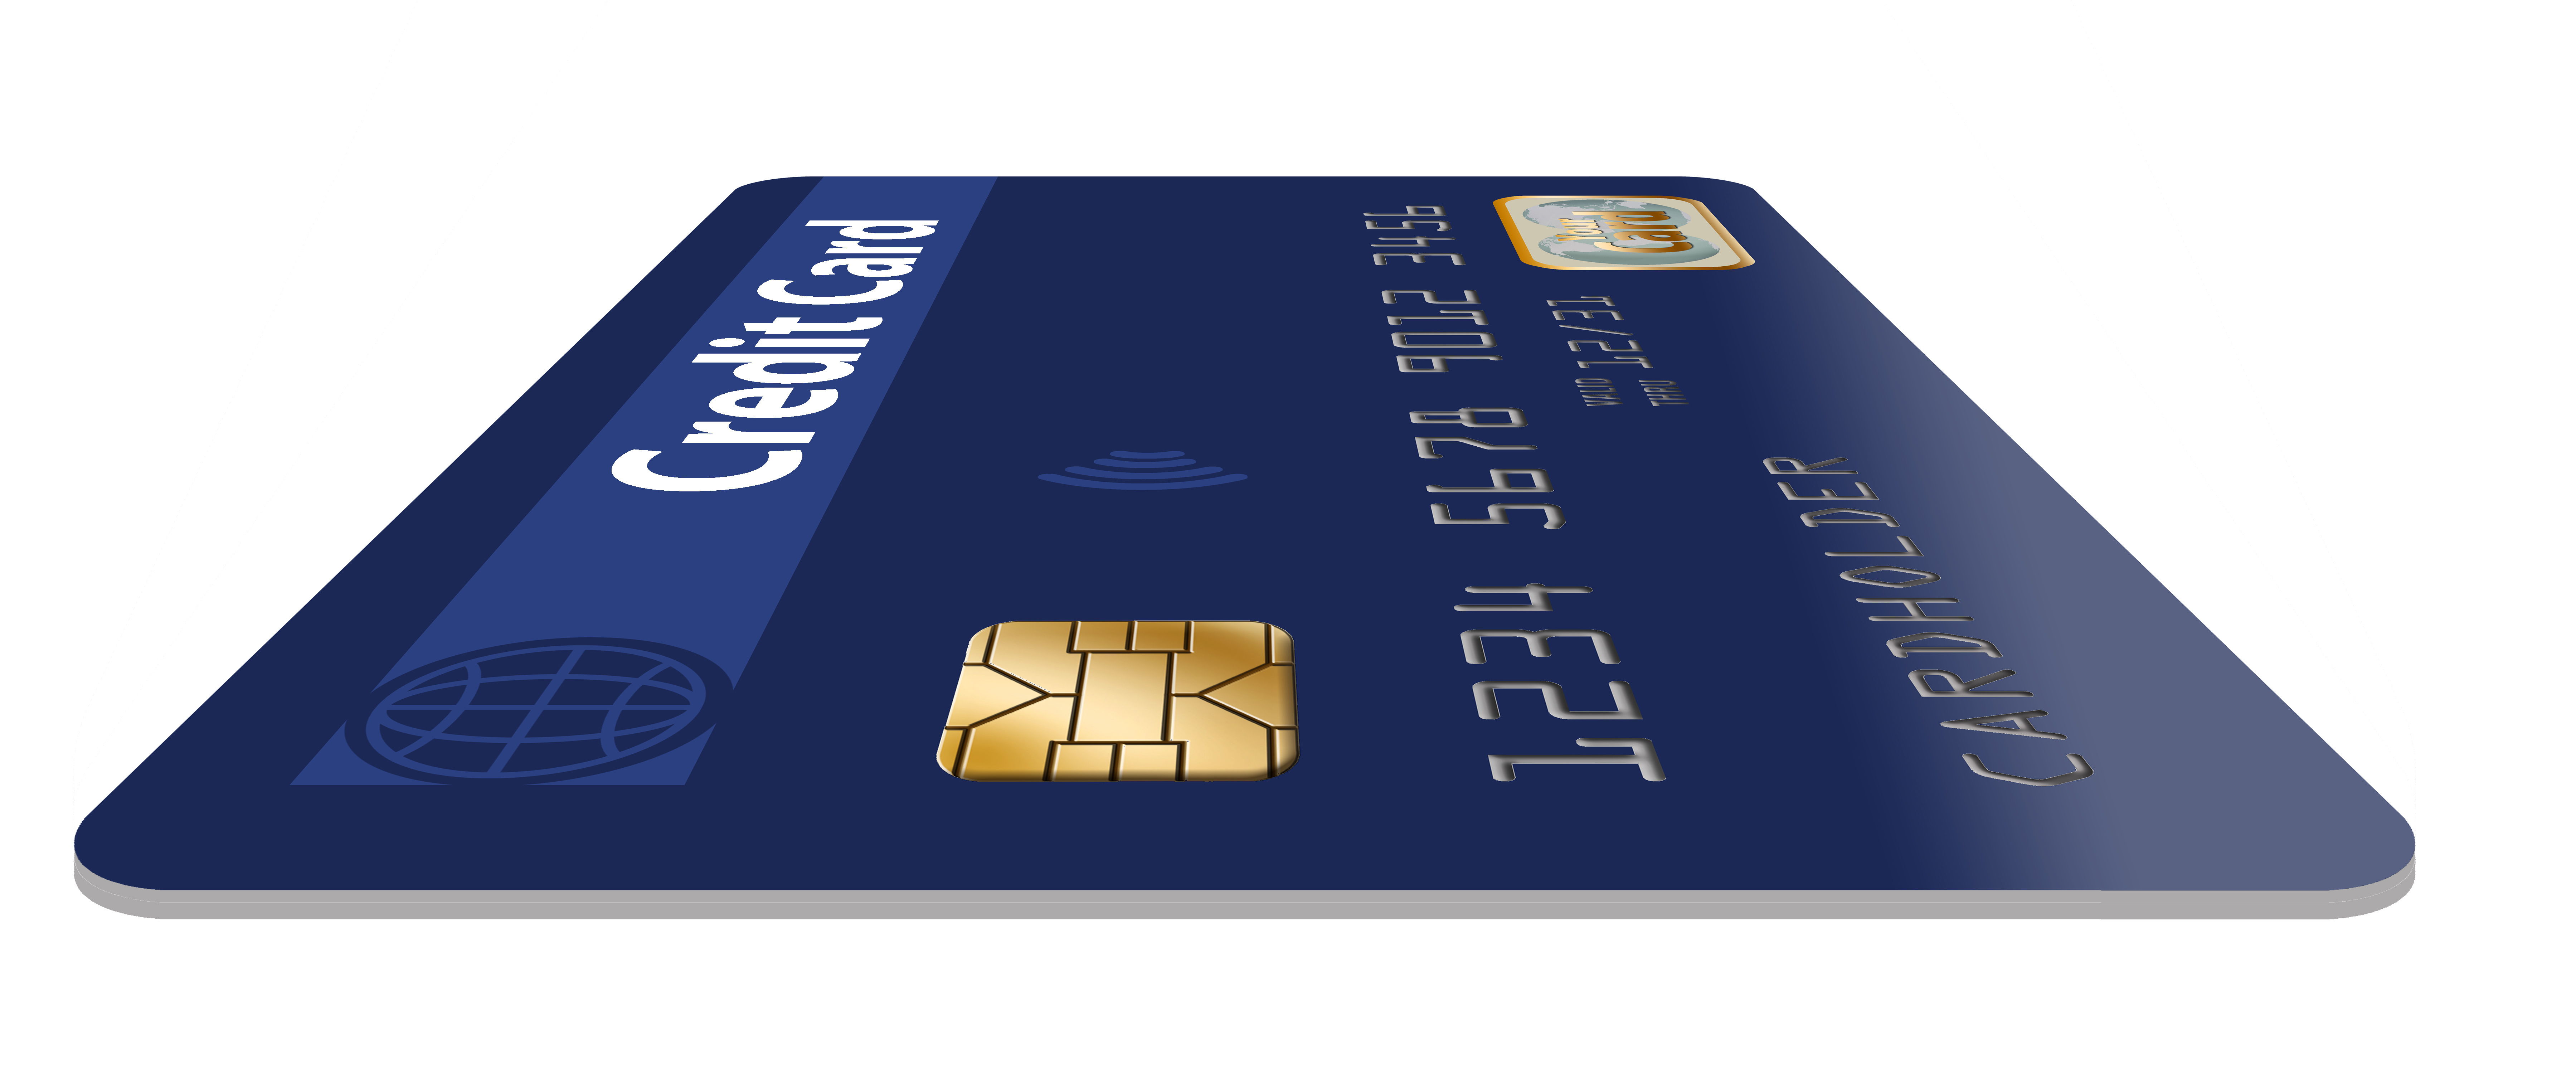 Credit Card with EMV Chip